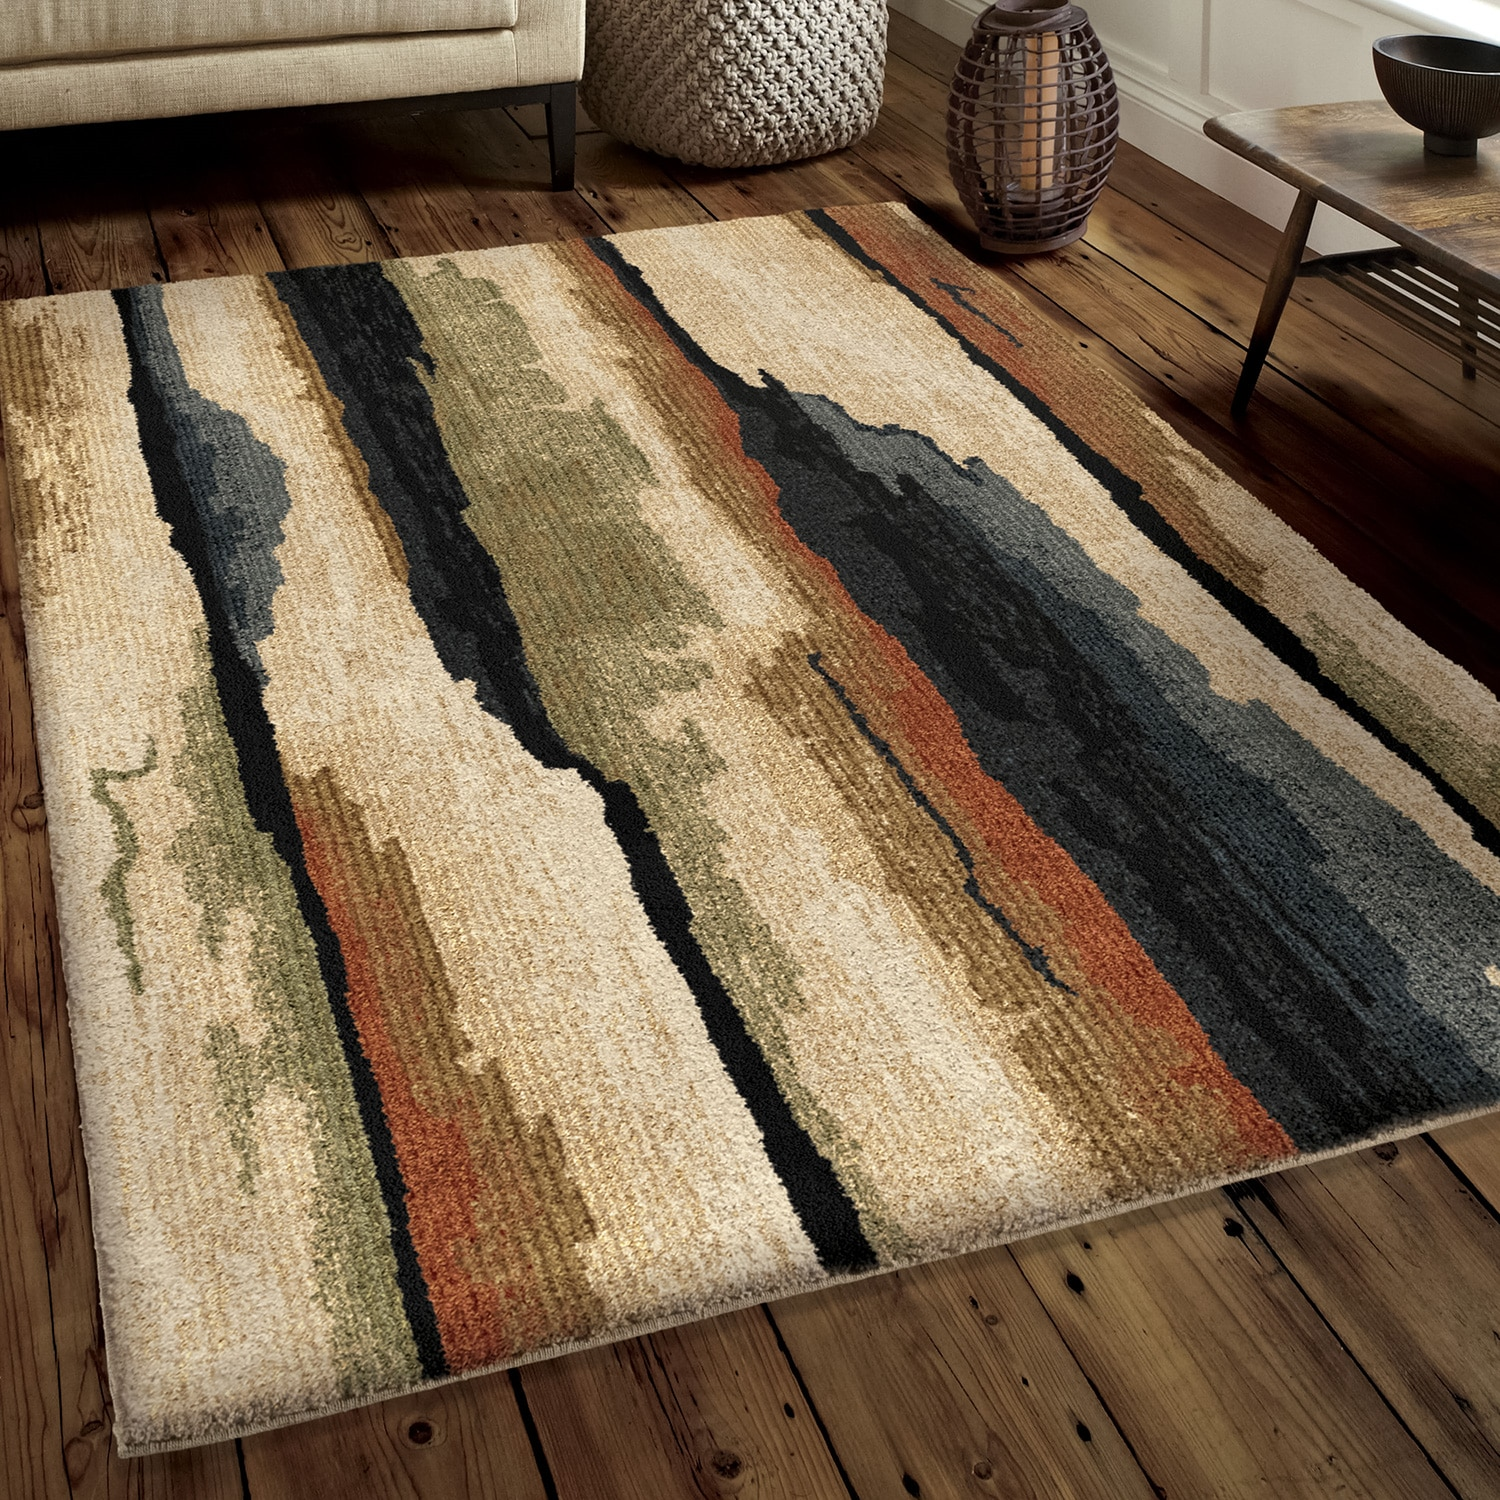 Rock Cliff Area Rug – 5' x 8'